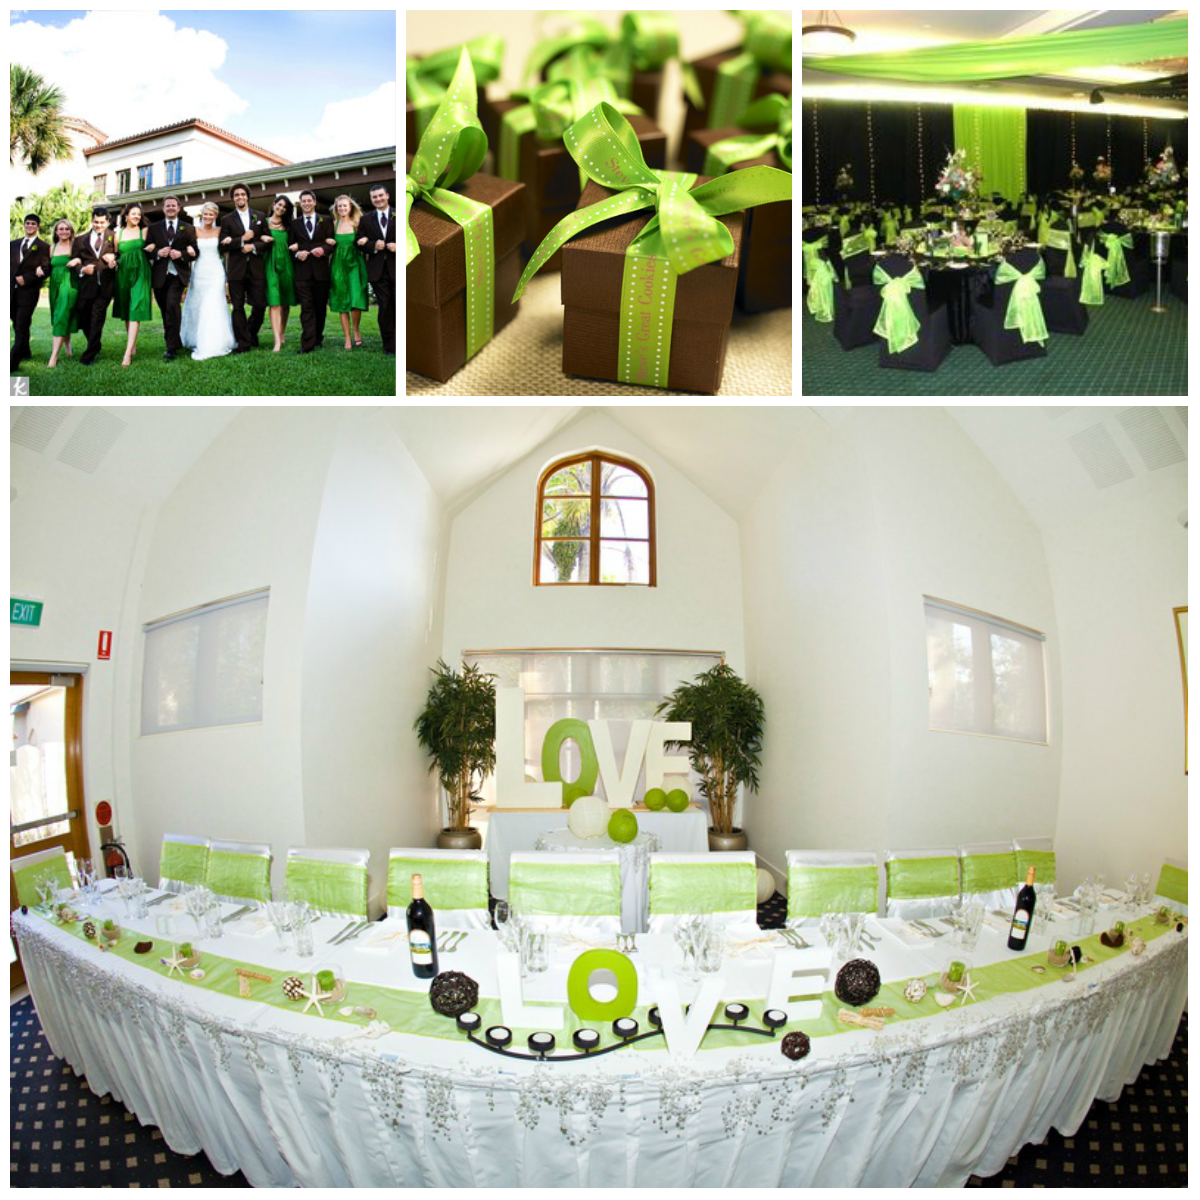 Wedding in green: design from A to Z